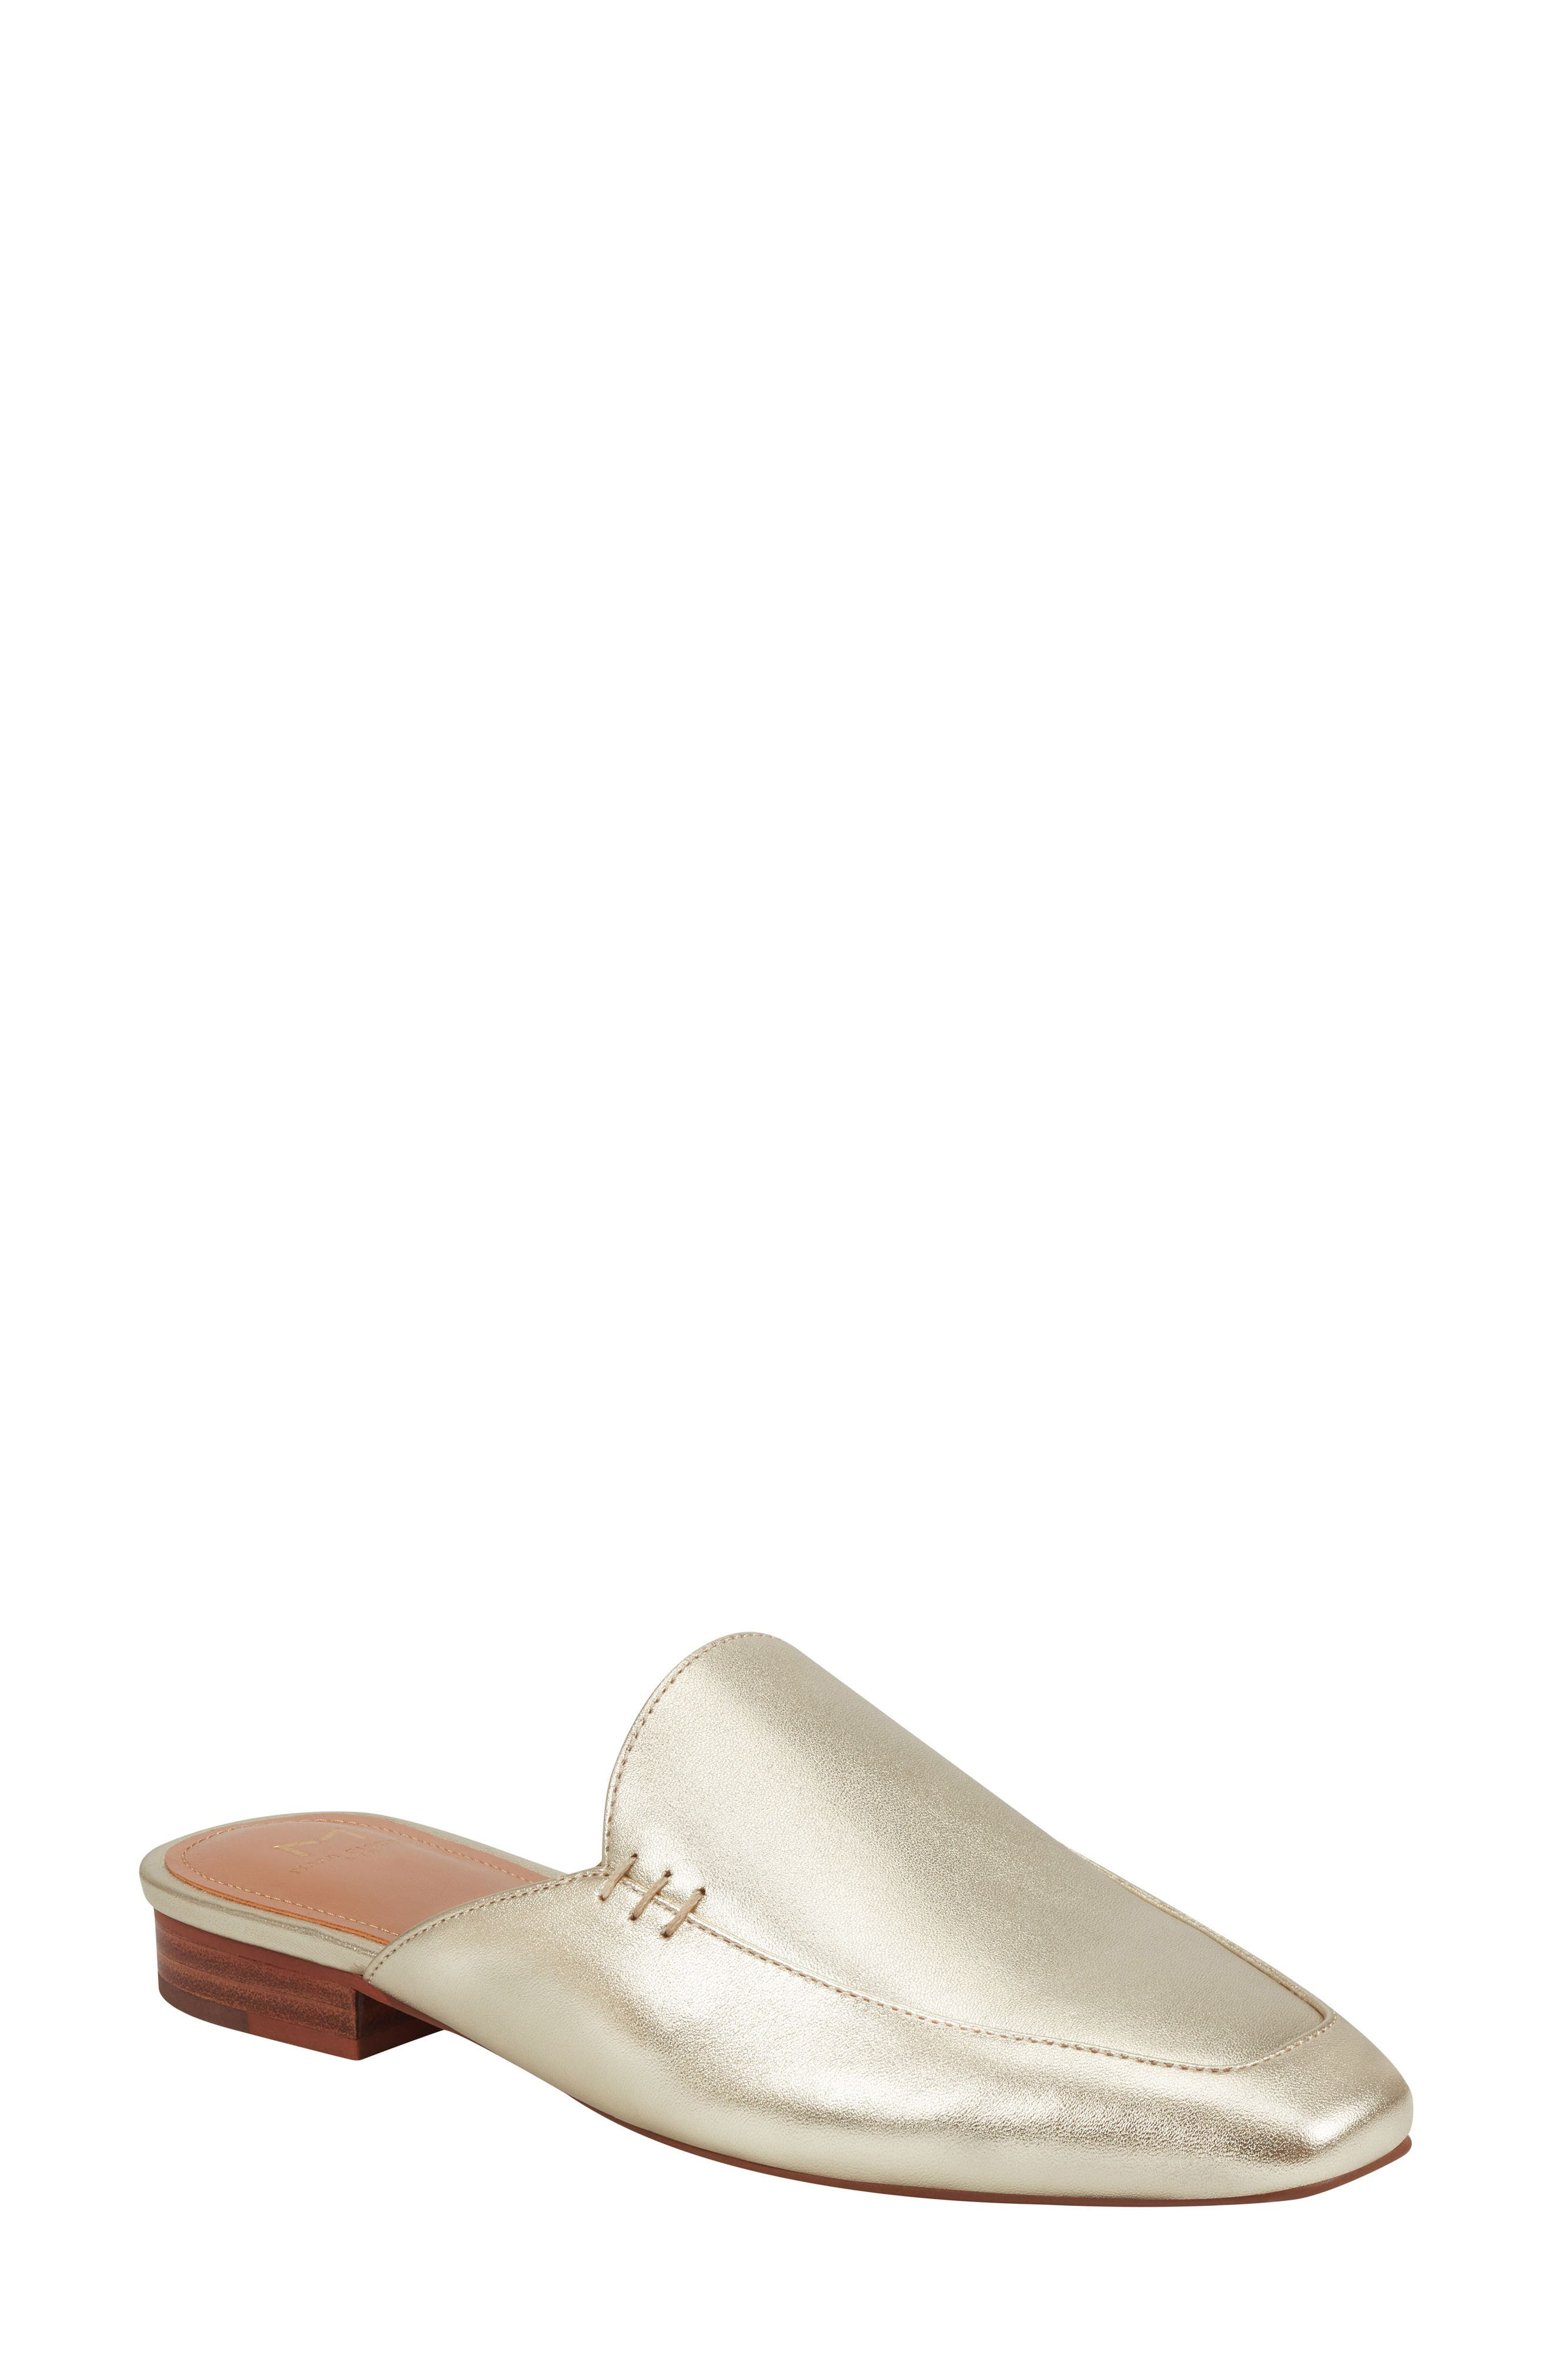 Image of Marc Fisher LTD Pam3 Leather Flat Mule